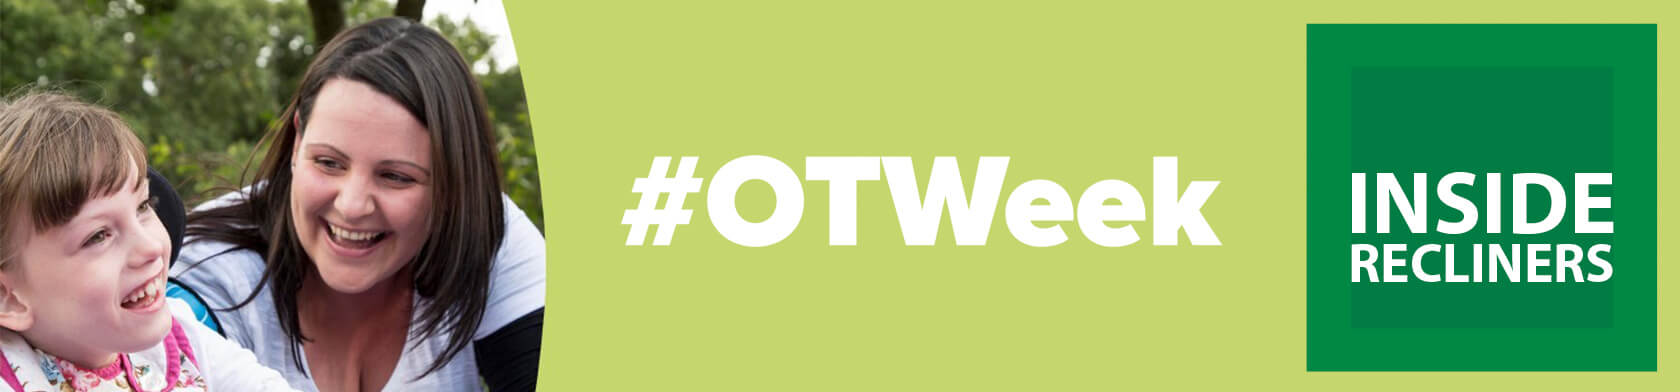 OT Week Highlights why Occupational Therapy is such a Rewarding Profession